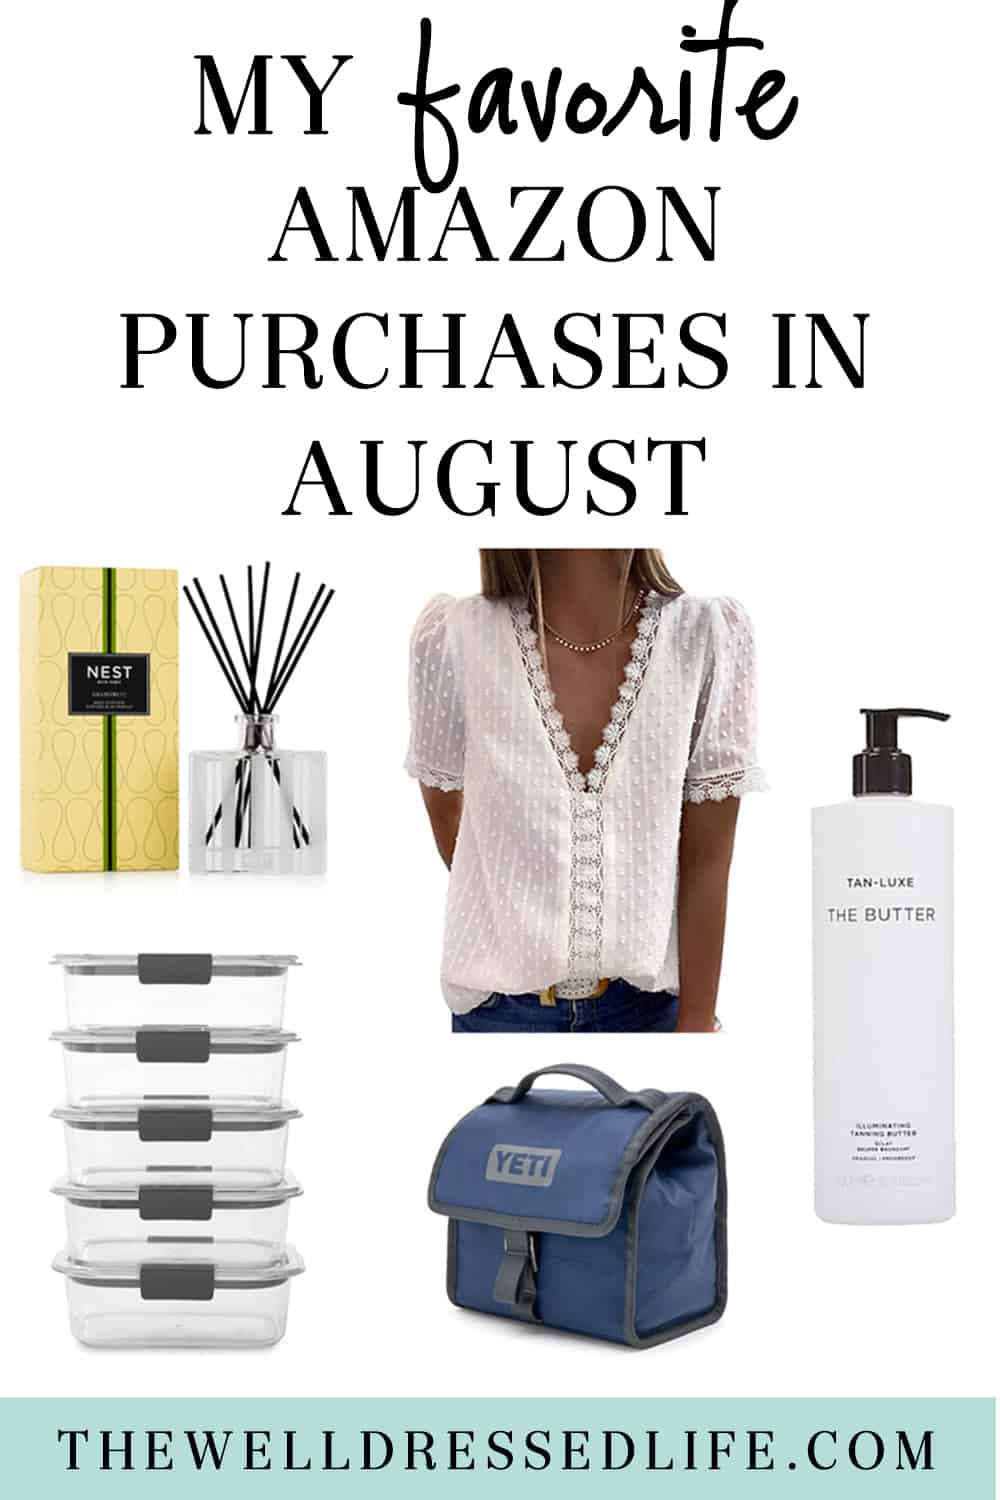 My Favorite Amazon Purchases in August